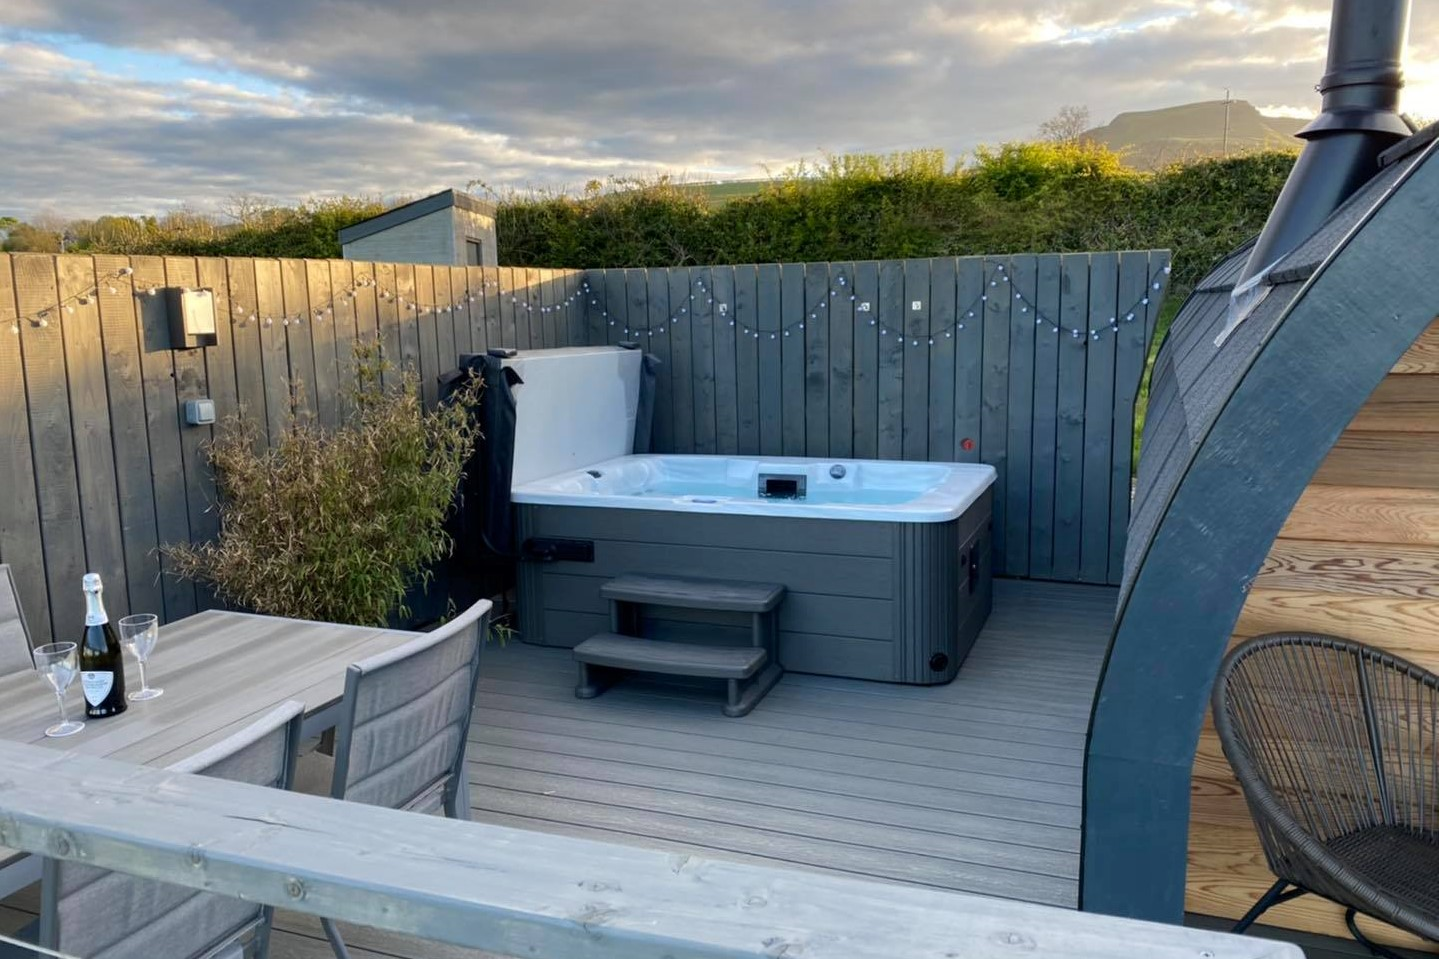 decking-with-table-and-chairs-and-hot-tub-at-sycamore-pods